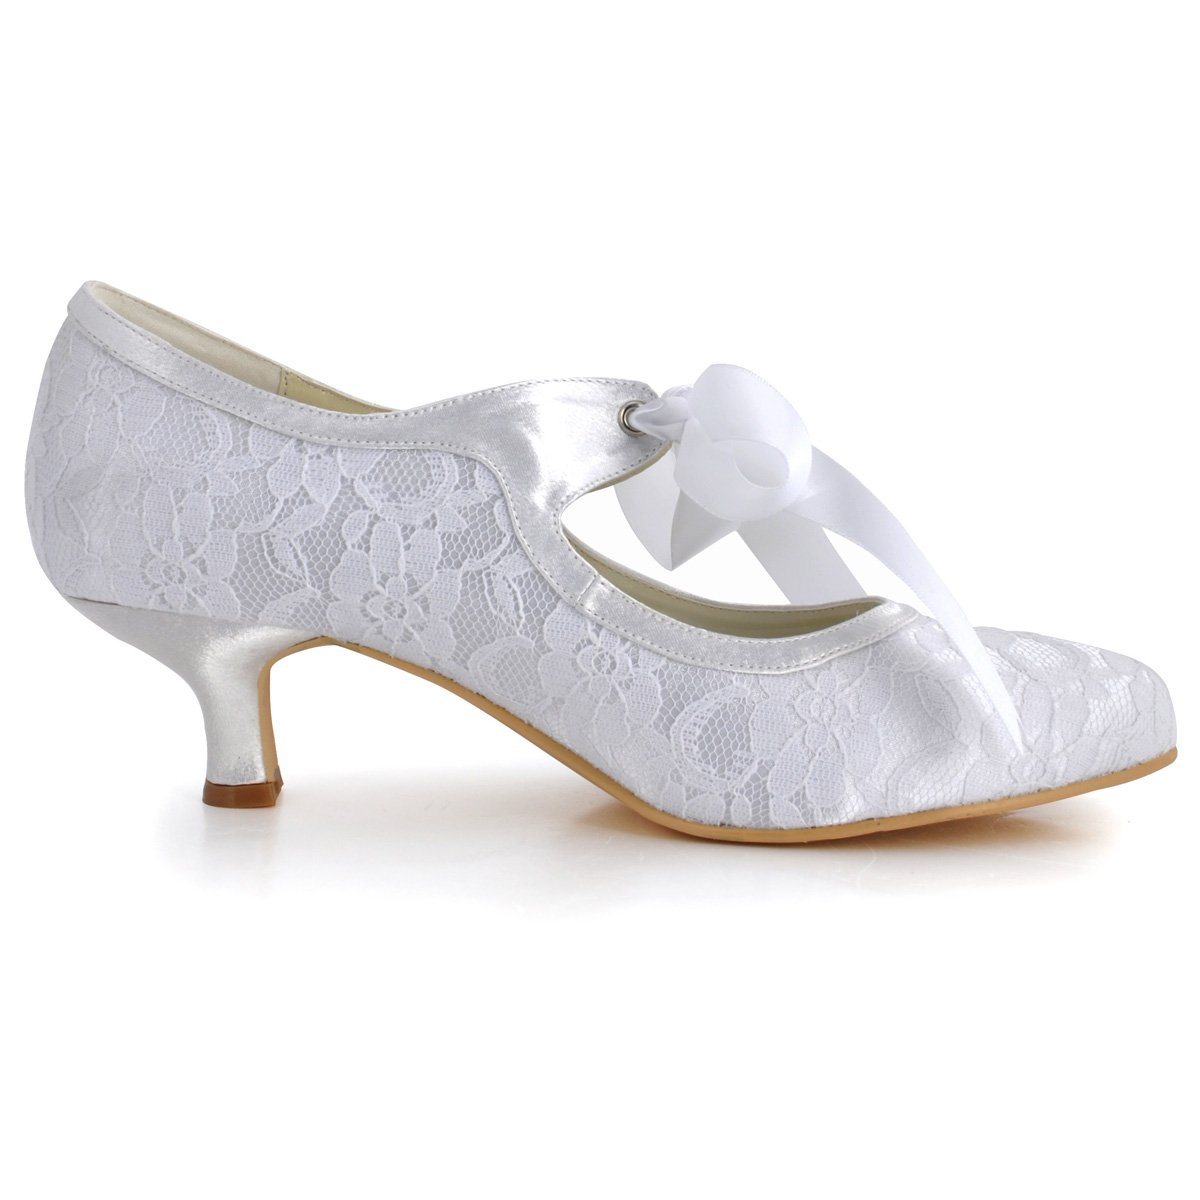 ElegantPark HC1521 Women's Mary Jane Closed Toe Low Heel Pumps Lace Wedding Dress Shoes B00CRT85DG 11 B(M) US|White